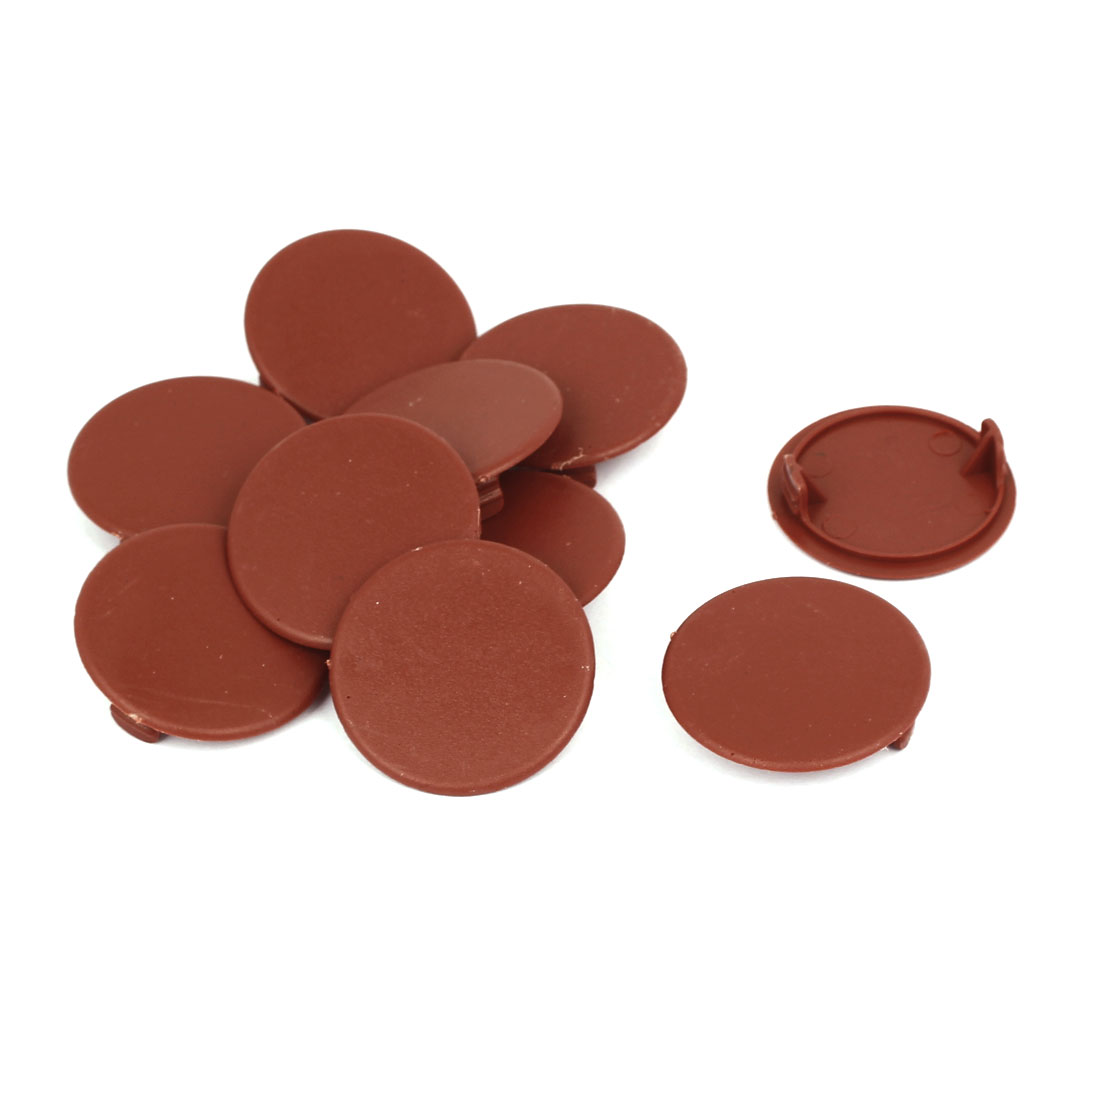 Home Plastic Round Flush Mount Hole Stoppers Covers Brown 40mm Dia 10pcs